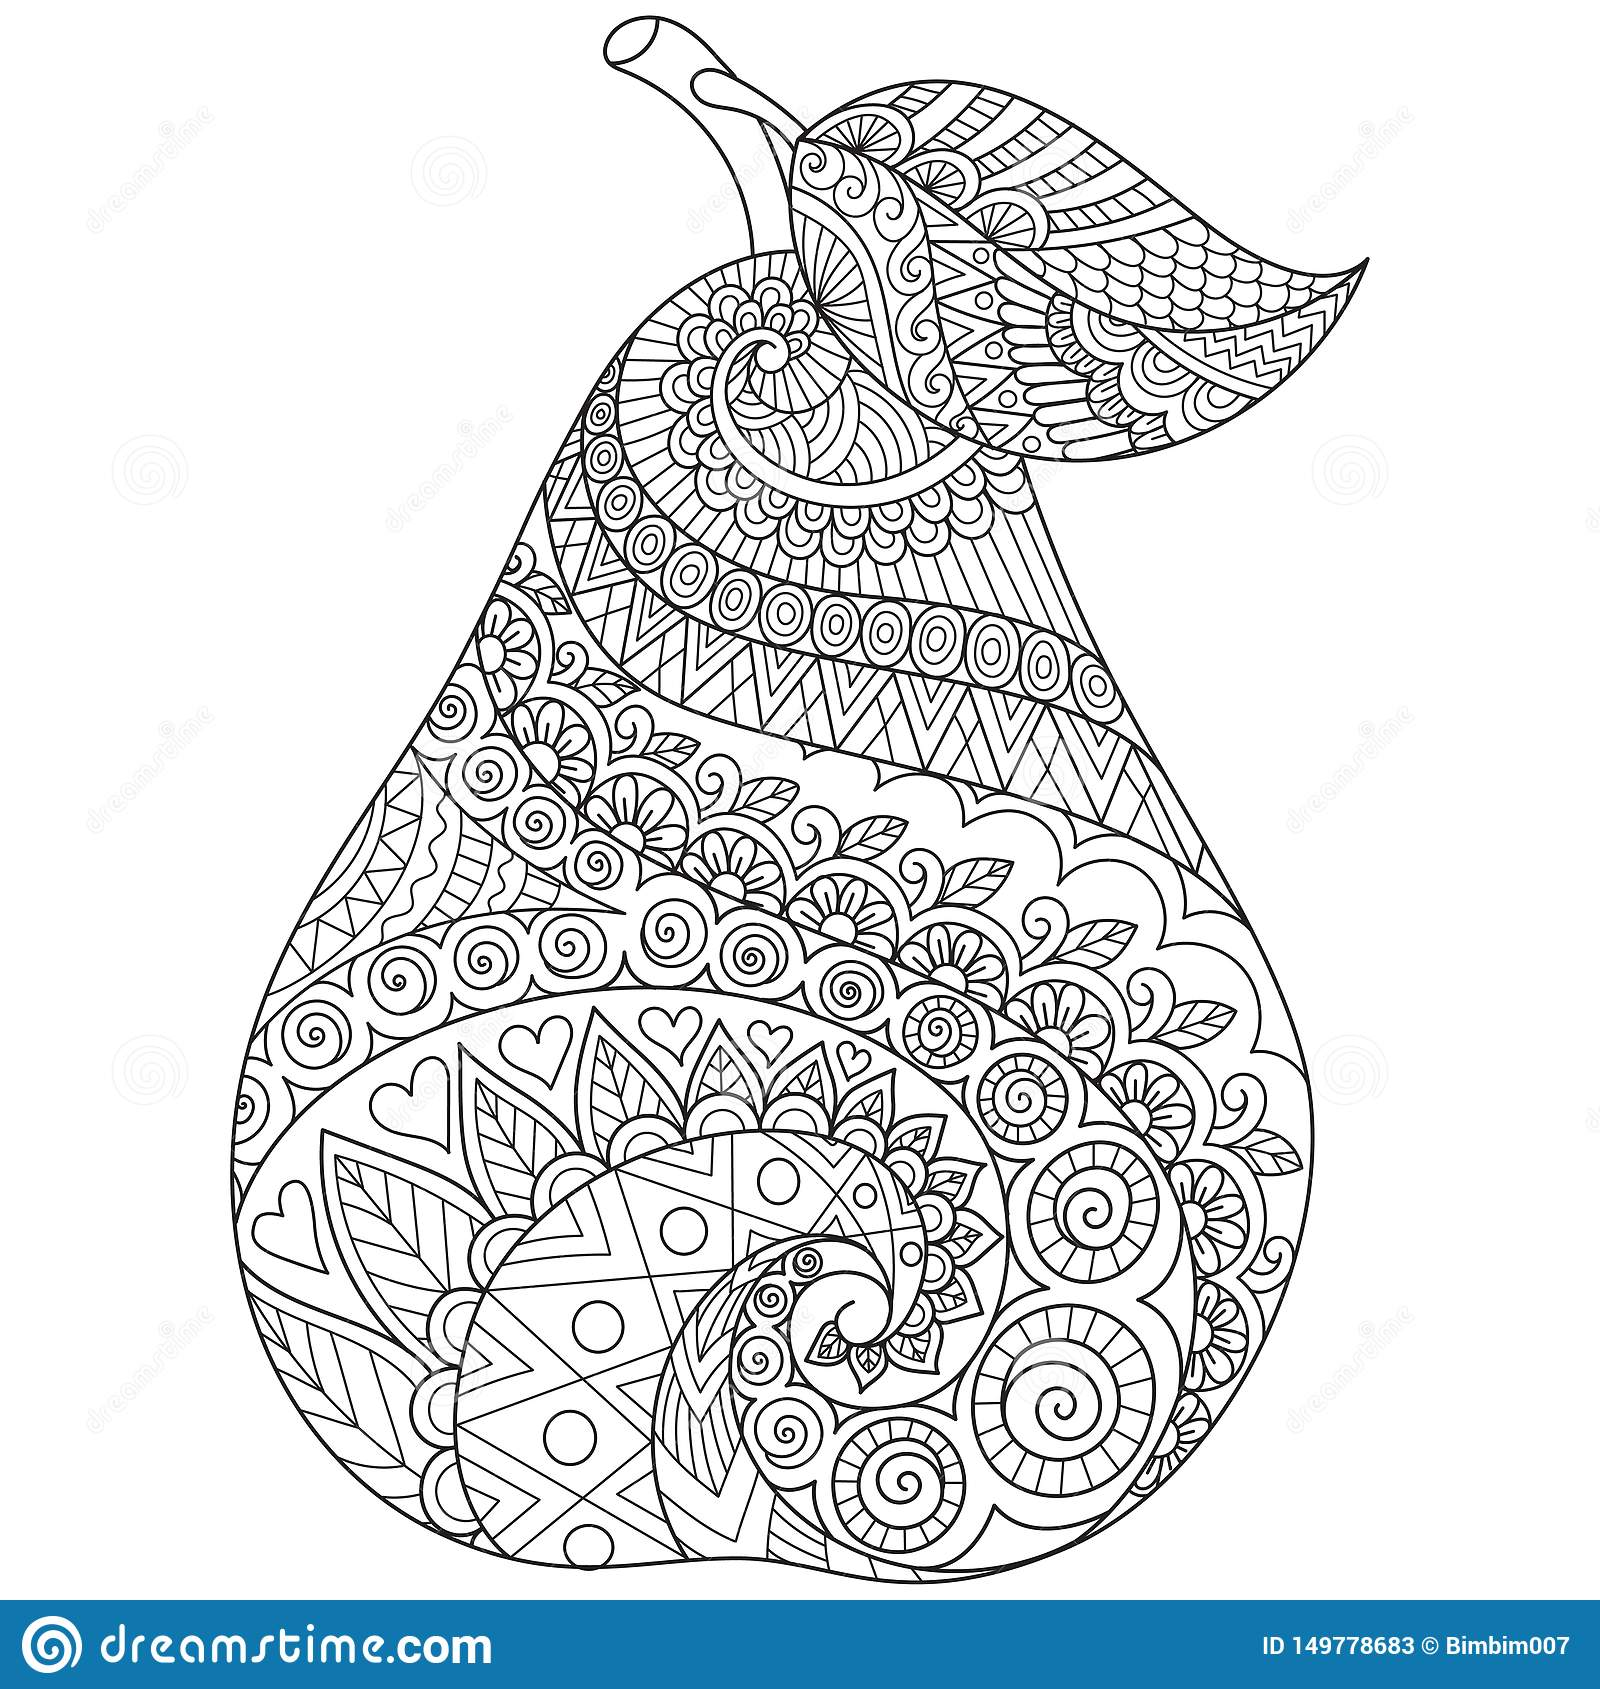 Line Art Drawing Of Pear With Editable Stroke Width For ...